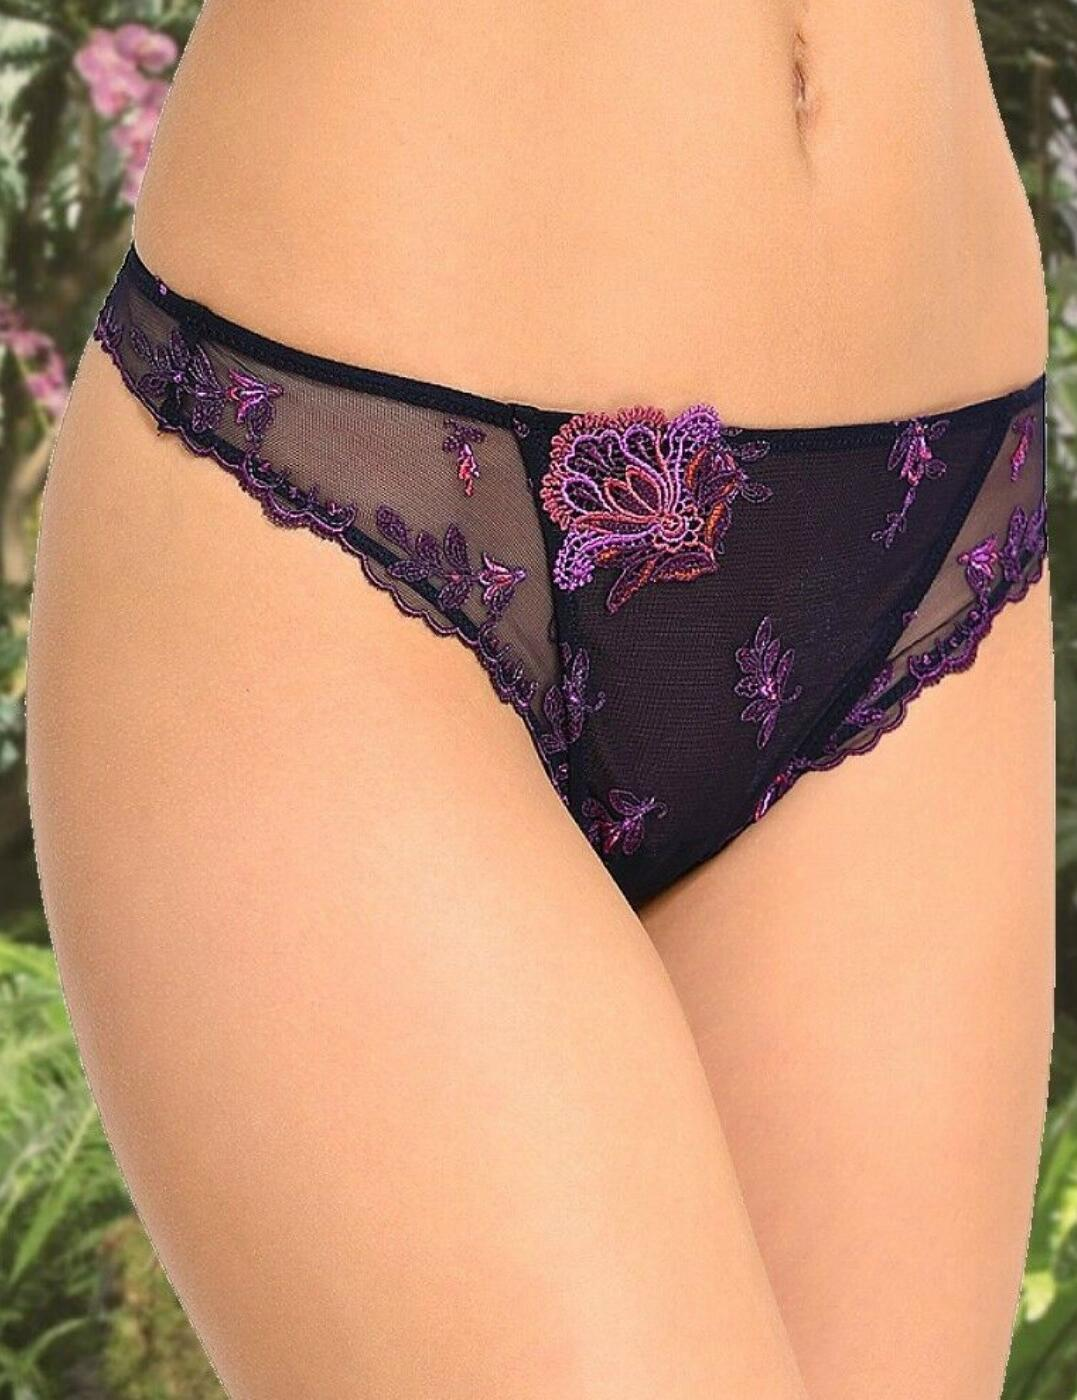 ACG0009 Lise Charmel Foret Lumiere Thong - ACG0009 Foret Pourpre